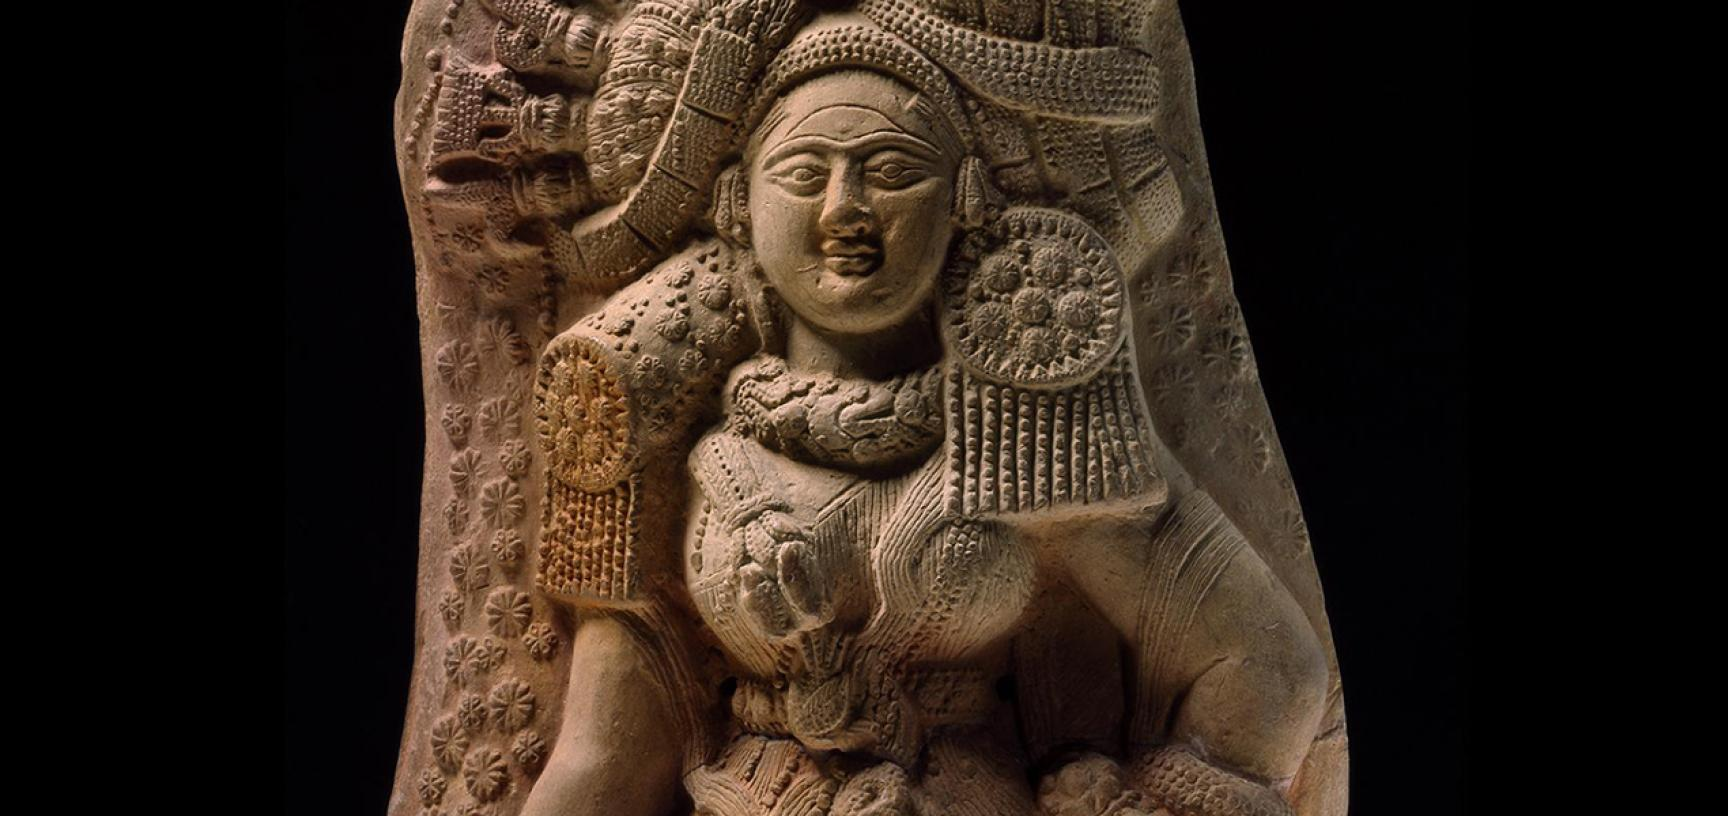 PLAQUE WITH YAKSHI (NATURE SPIRIT) (detail)